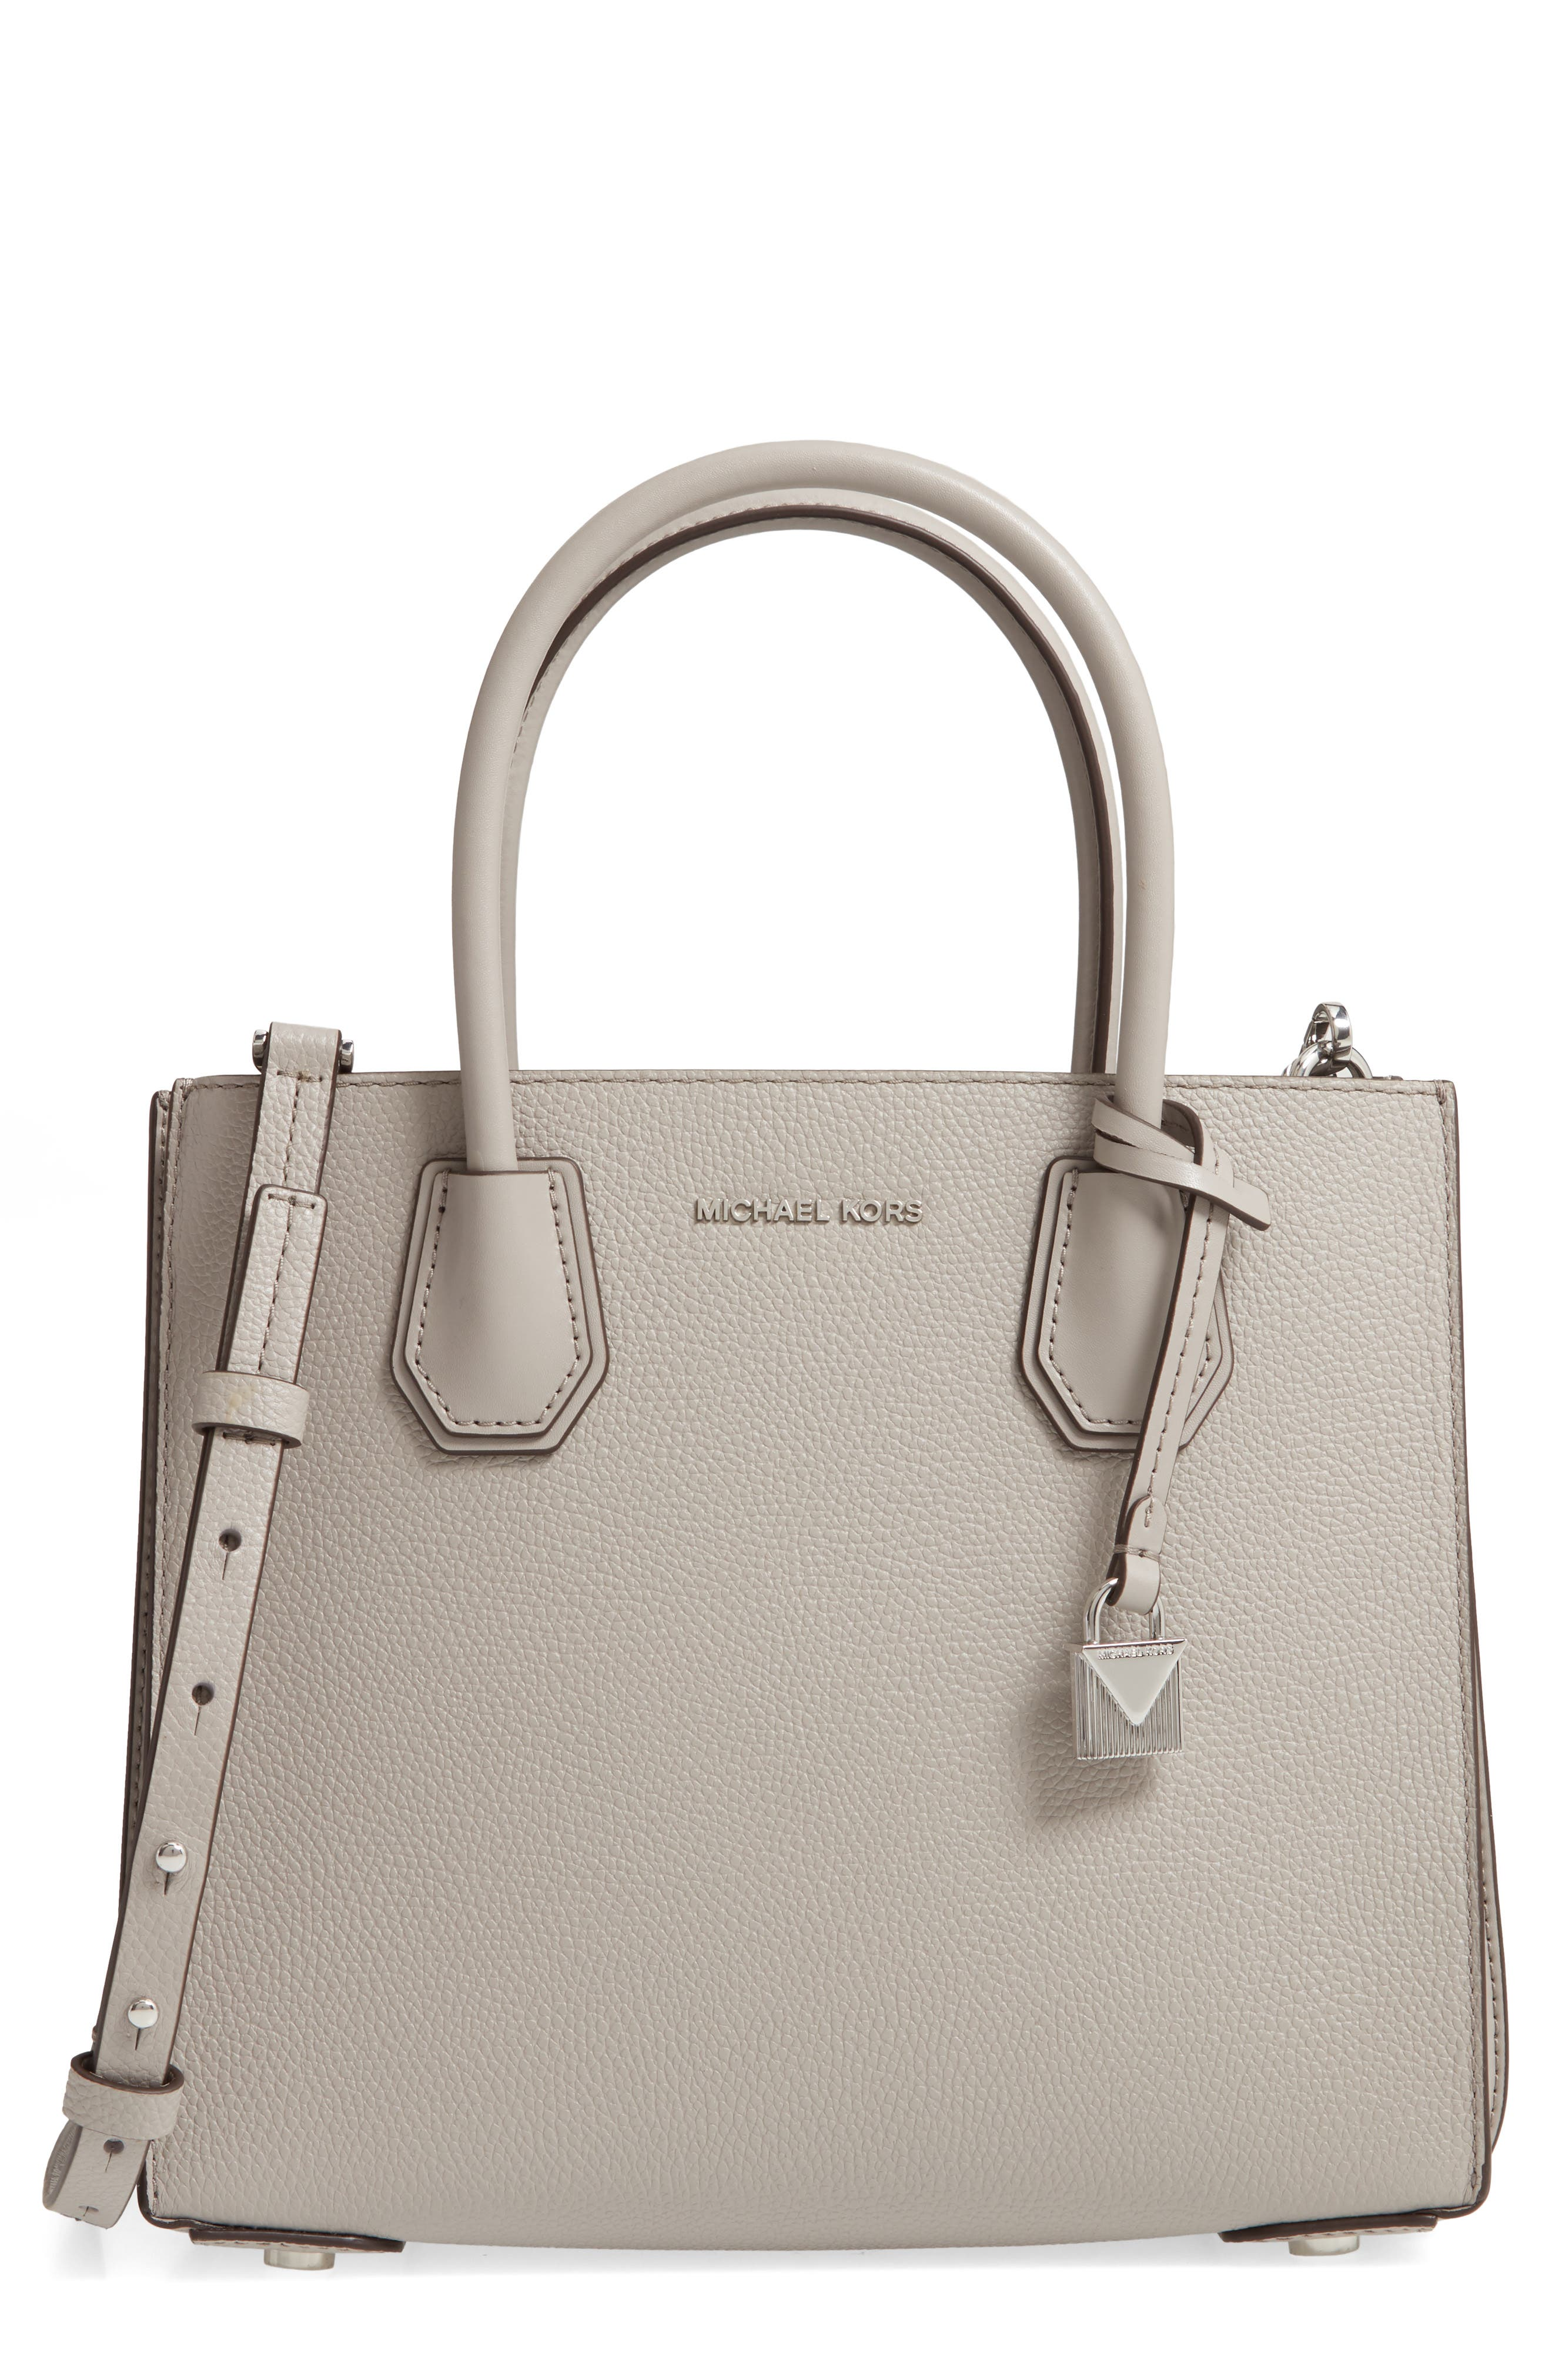 f8373894536b MICHAEL Michael Kors Tote Bags for Women: Leather, Coated Canvas, &  Neoprene | Nordstrom